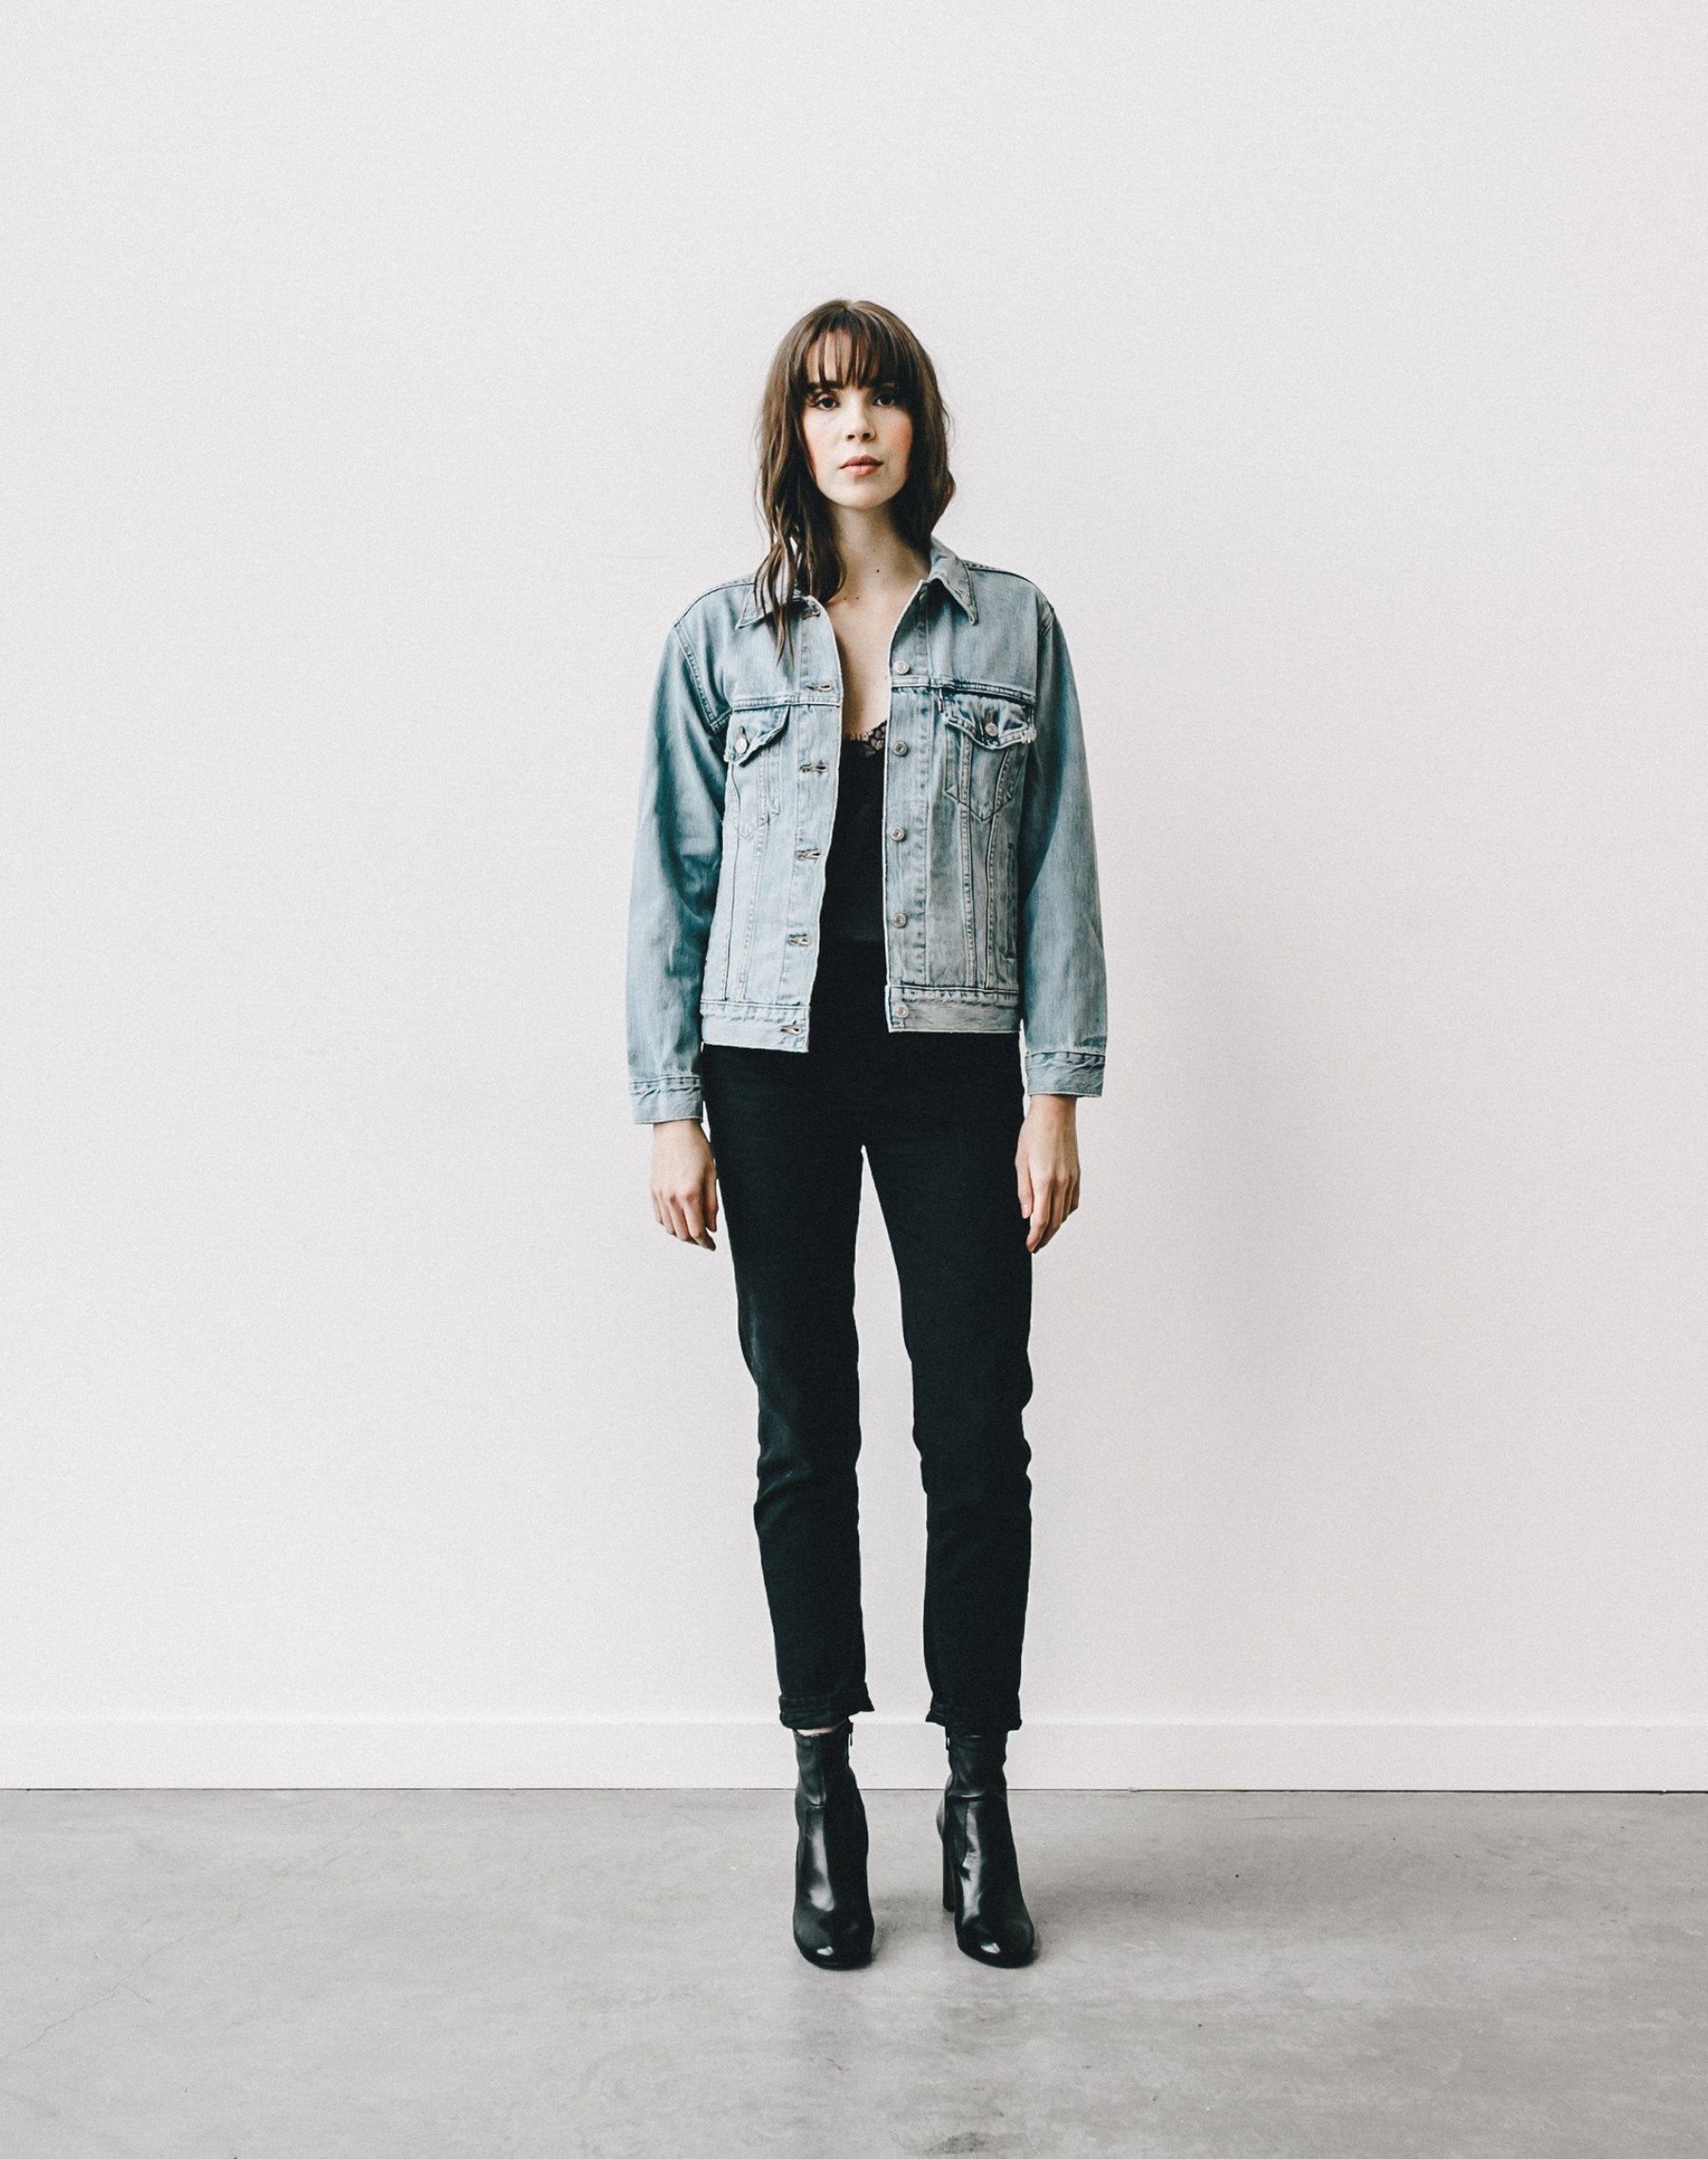 Full body photo of the Lindsay Brunette denim jacket by Brunette the Label.